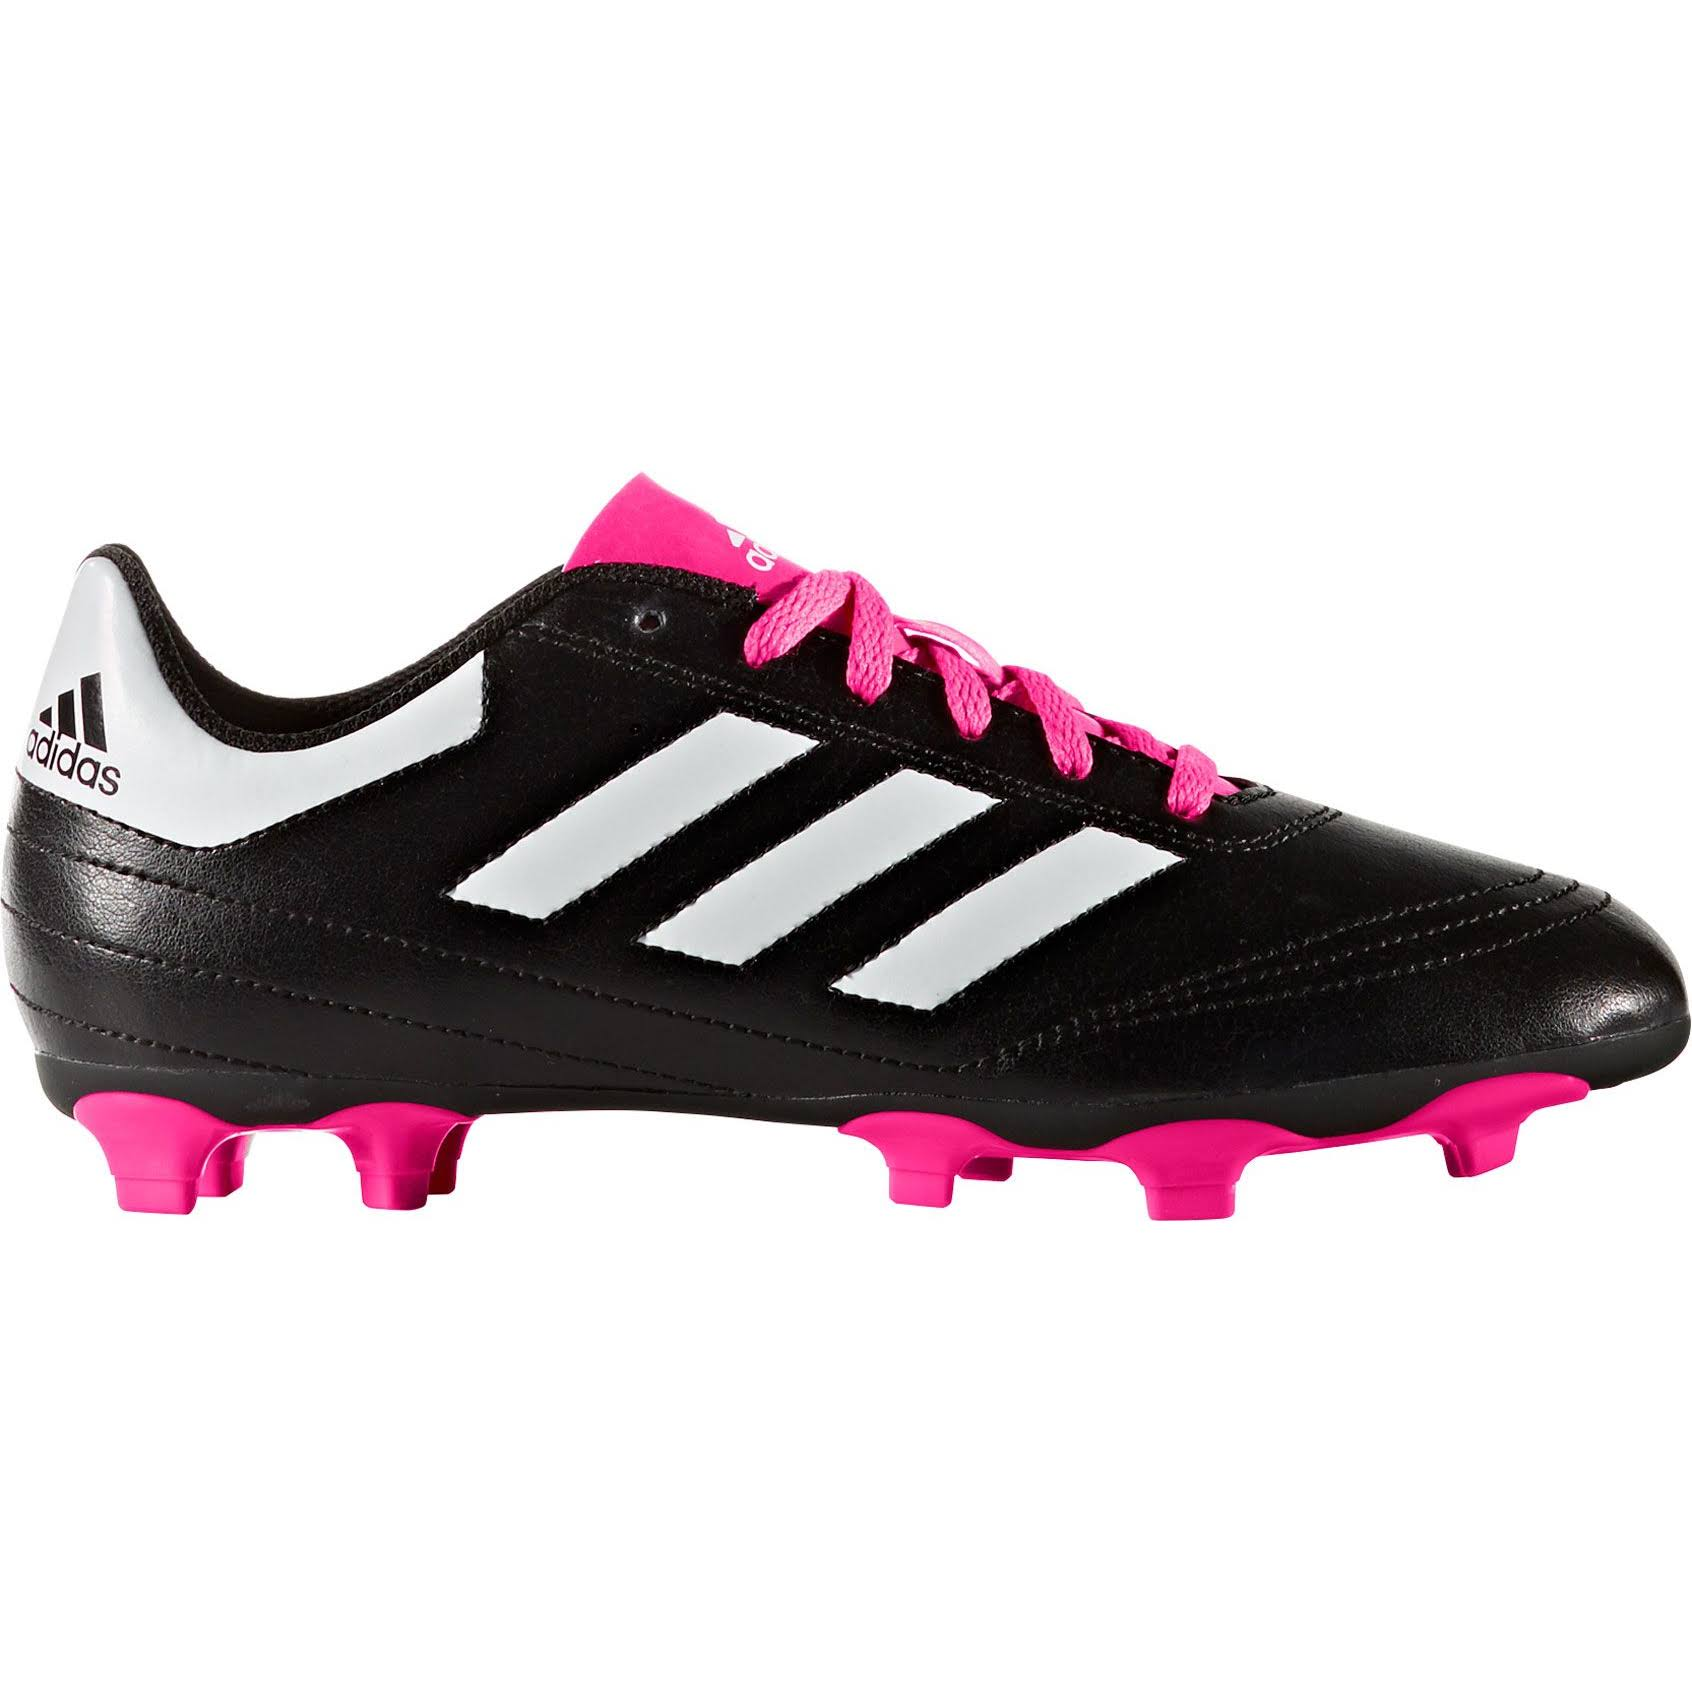 Adidas Kids' Goletto VI Fg Soccer Cleats - Black and Pink, 1.5 US